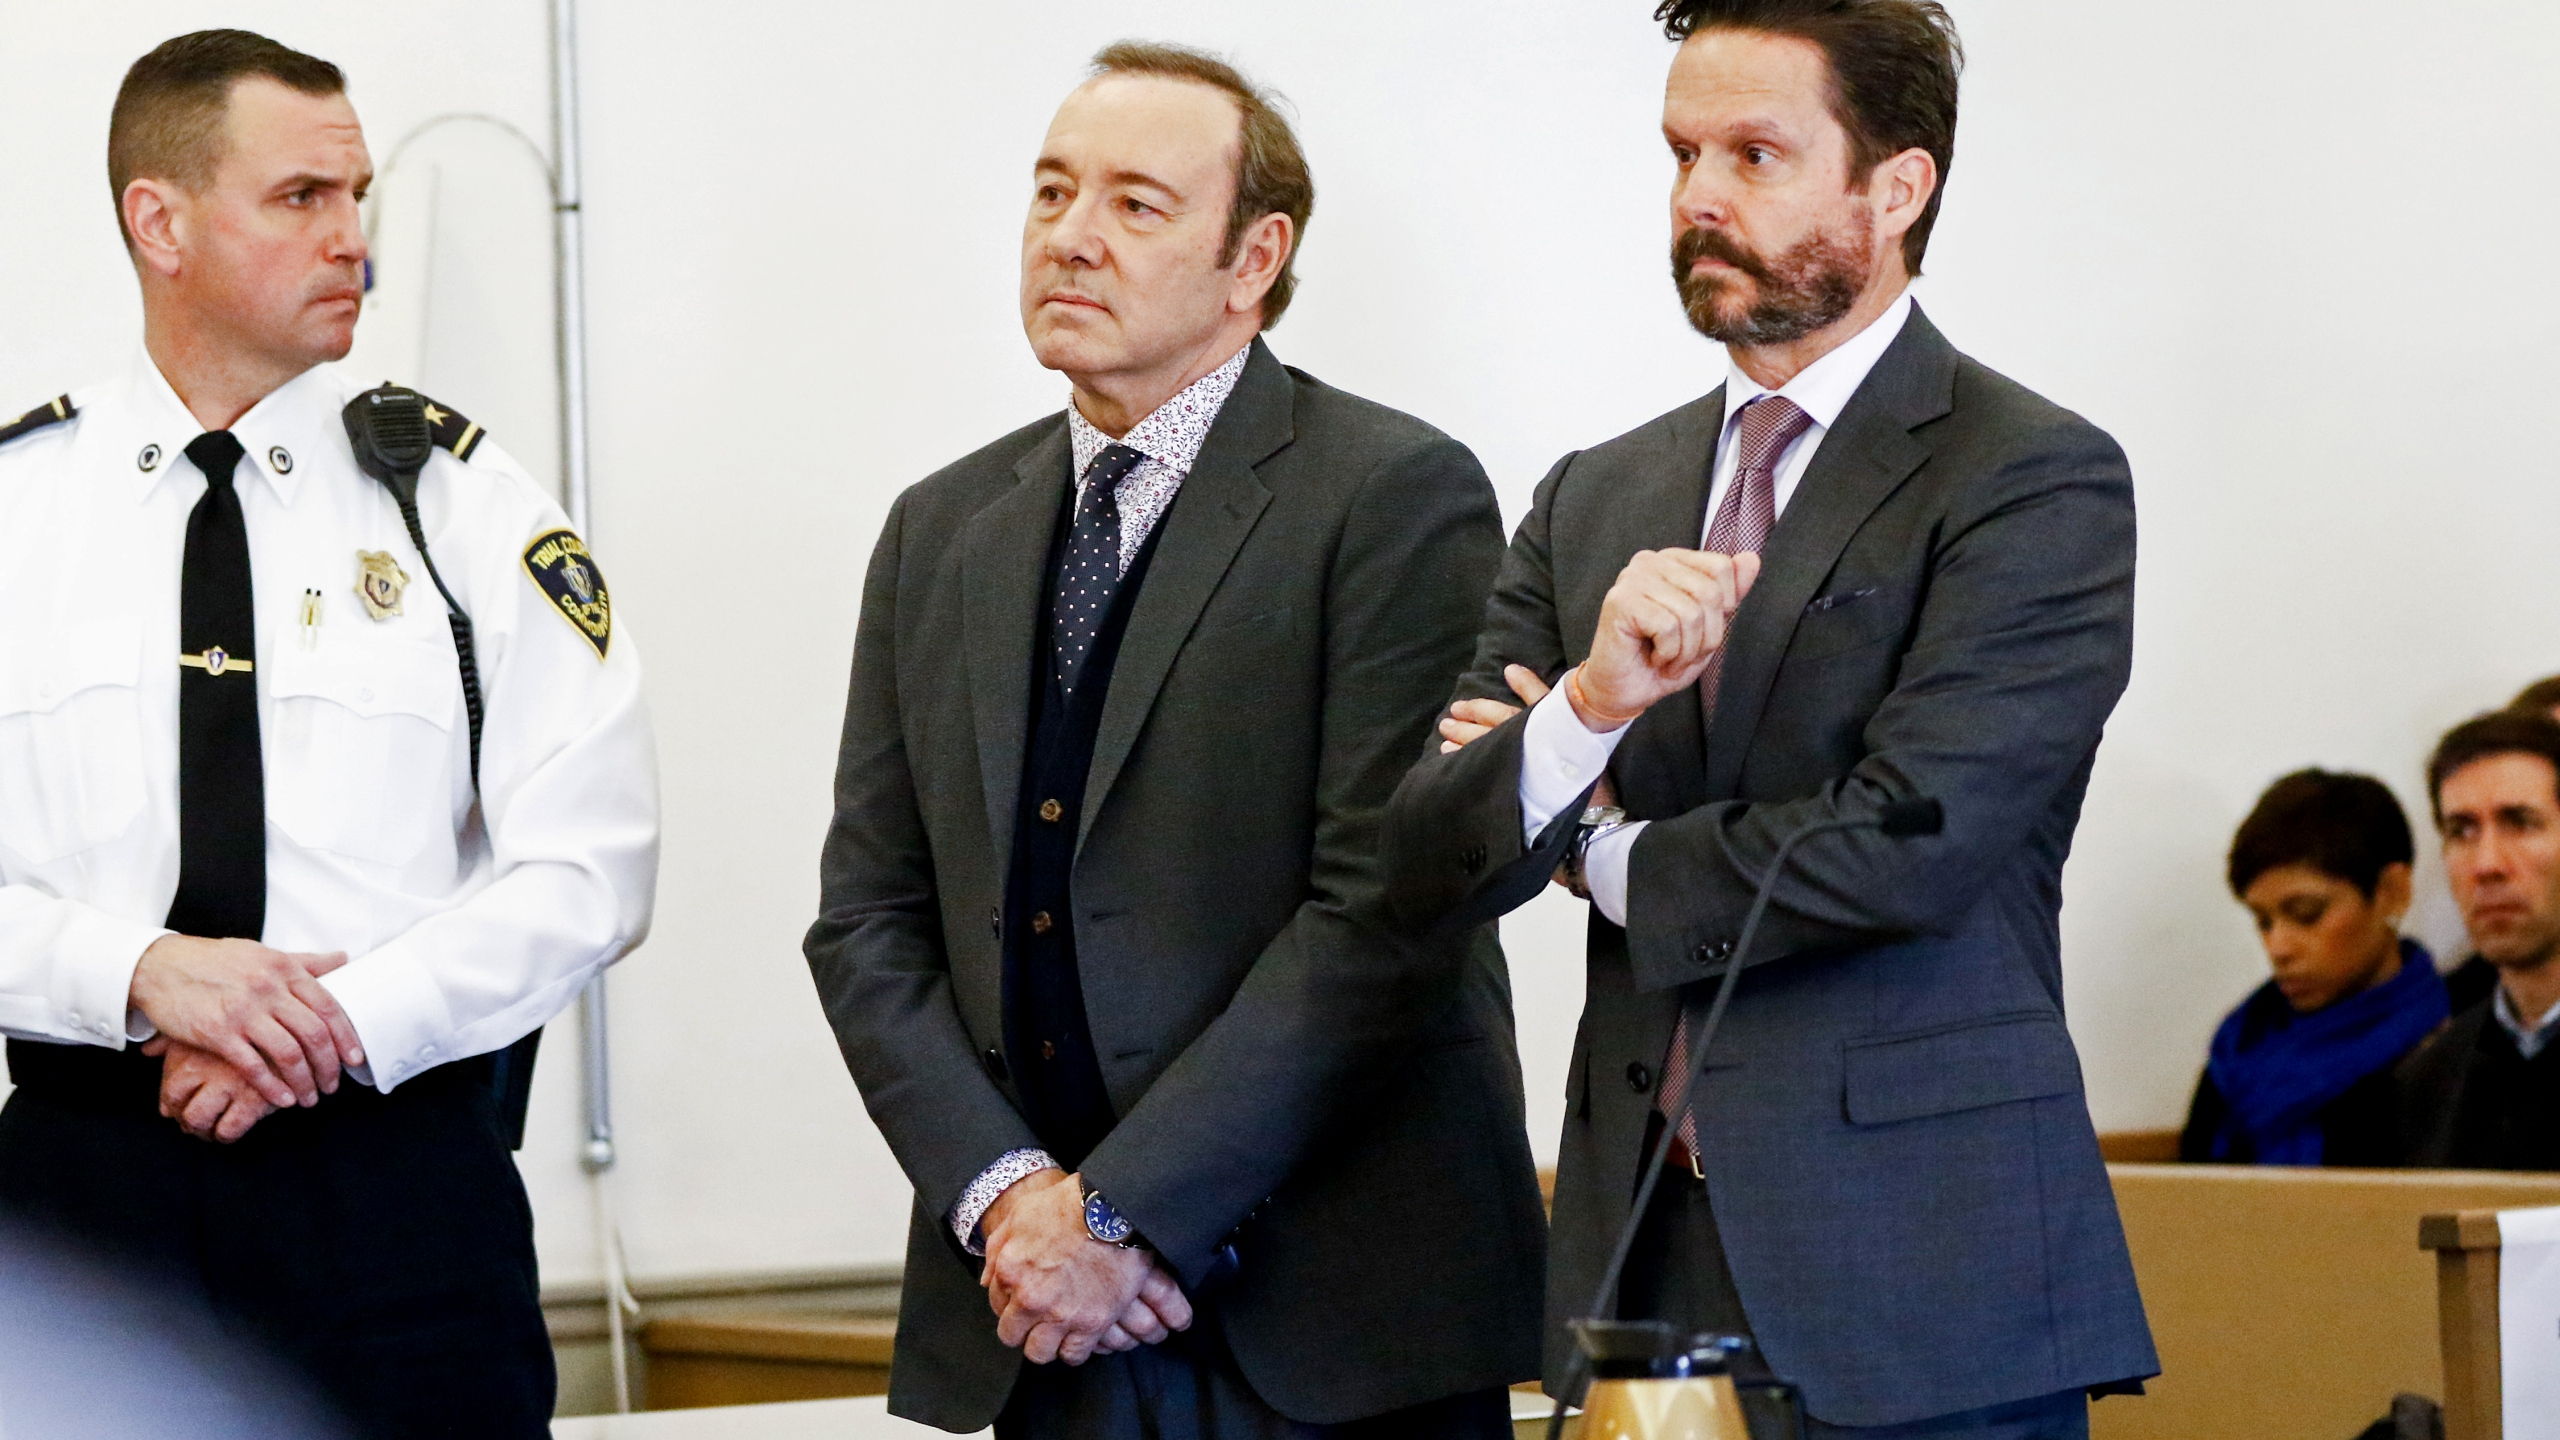 Actor Kevin Spacey attends his arraignment on sexual assault charges with his lawyer Alan Jackson at Nantucket District Court on Jan. 7, 2019, in Nantucket, Mass. (Credit: Nicole Harnishfeger-Pool/Getty Images)